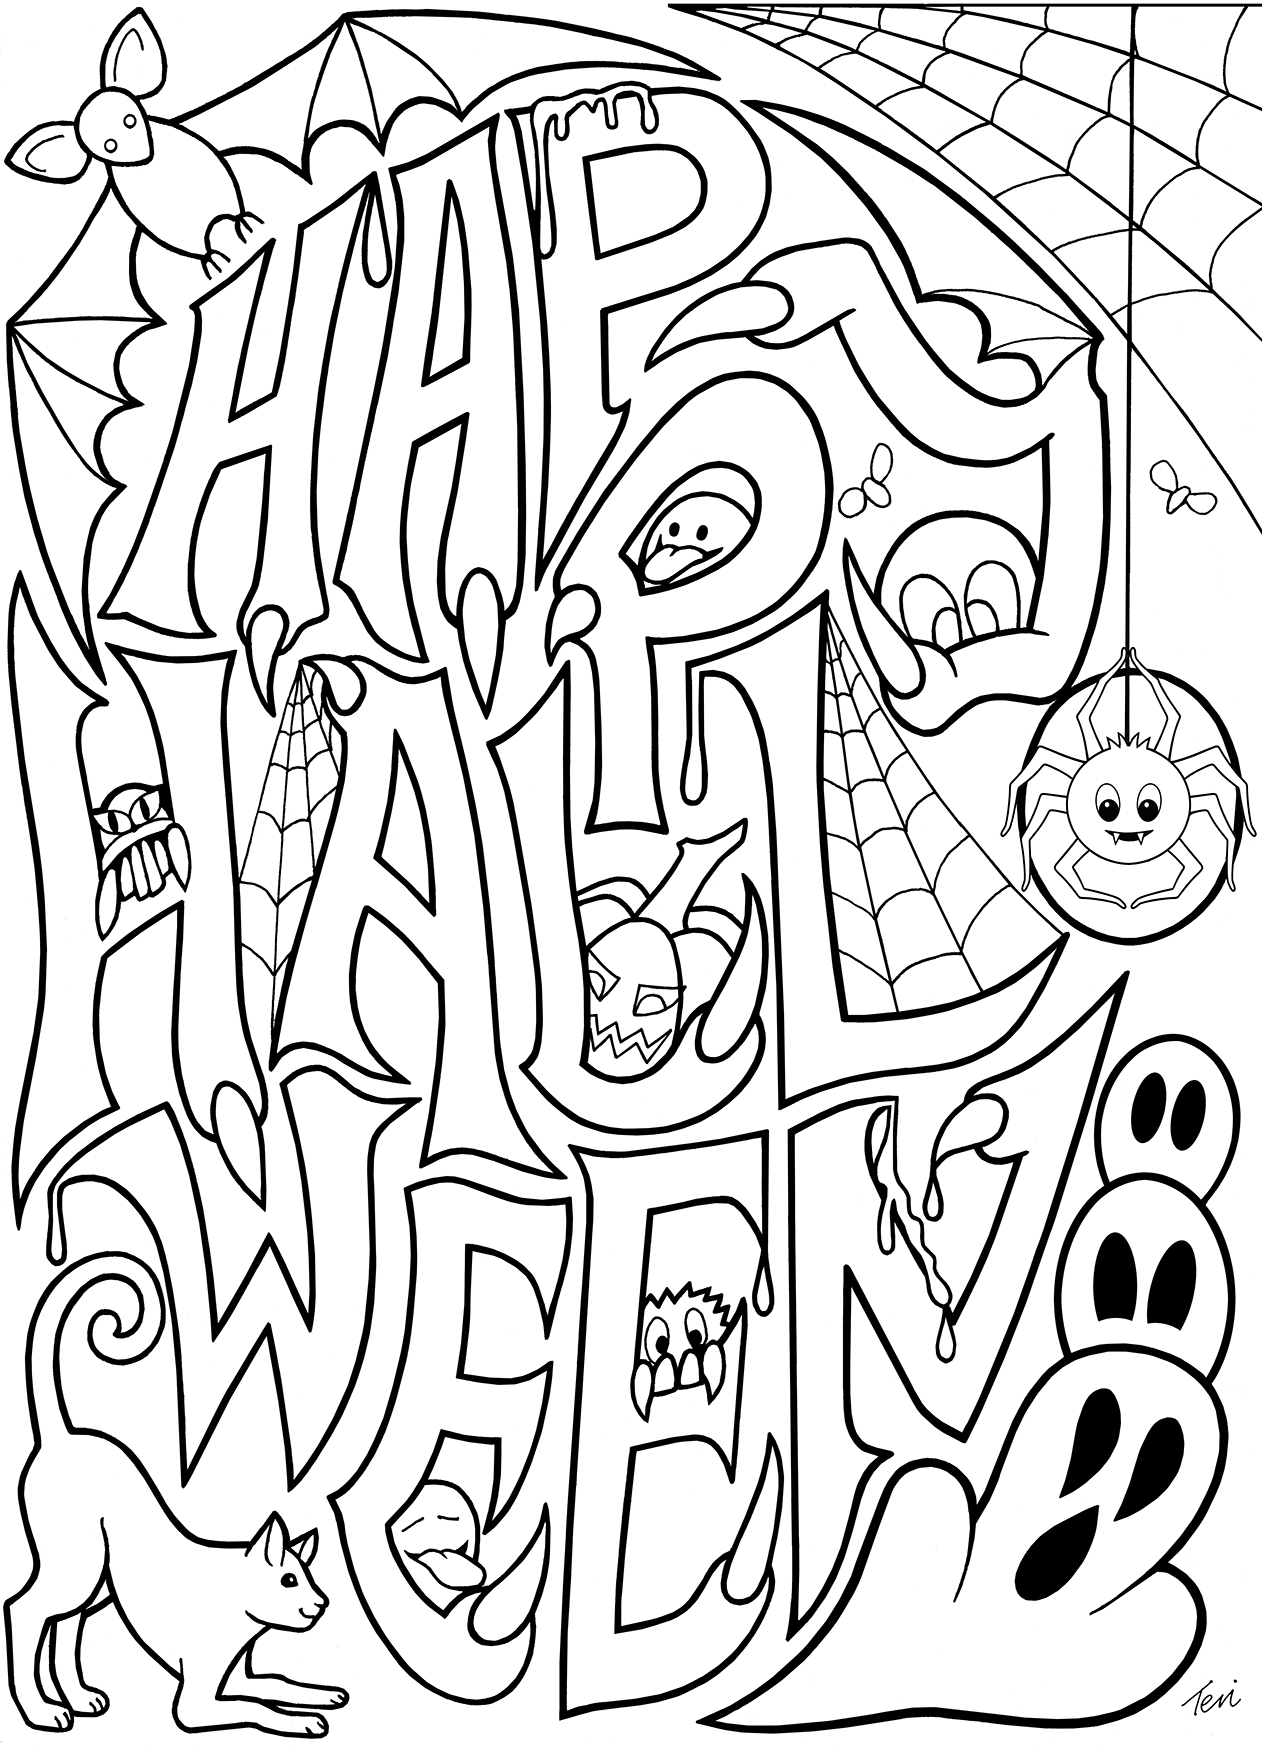 coloring templates halloween free printable halloween coloring pages for kids templates halloween coloring